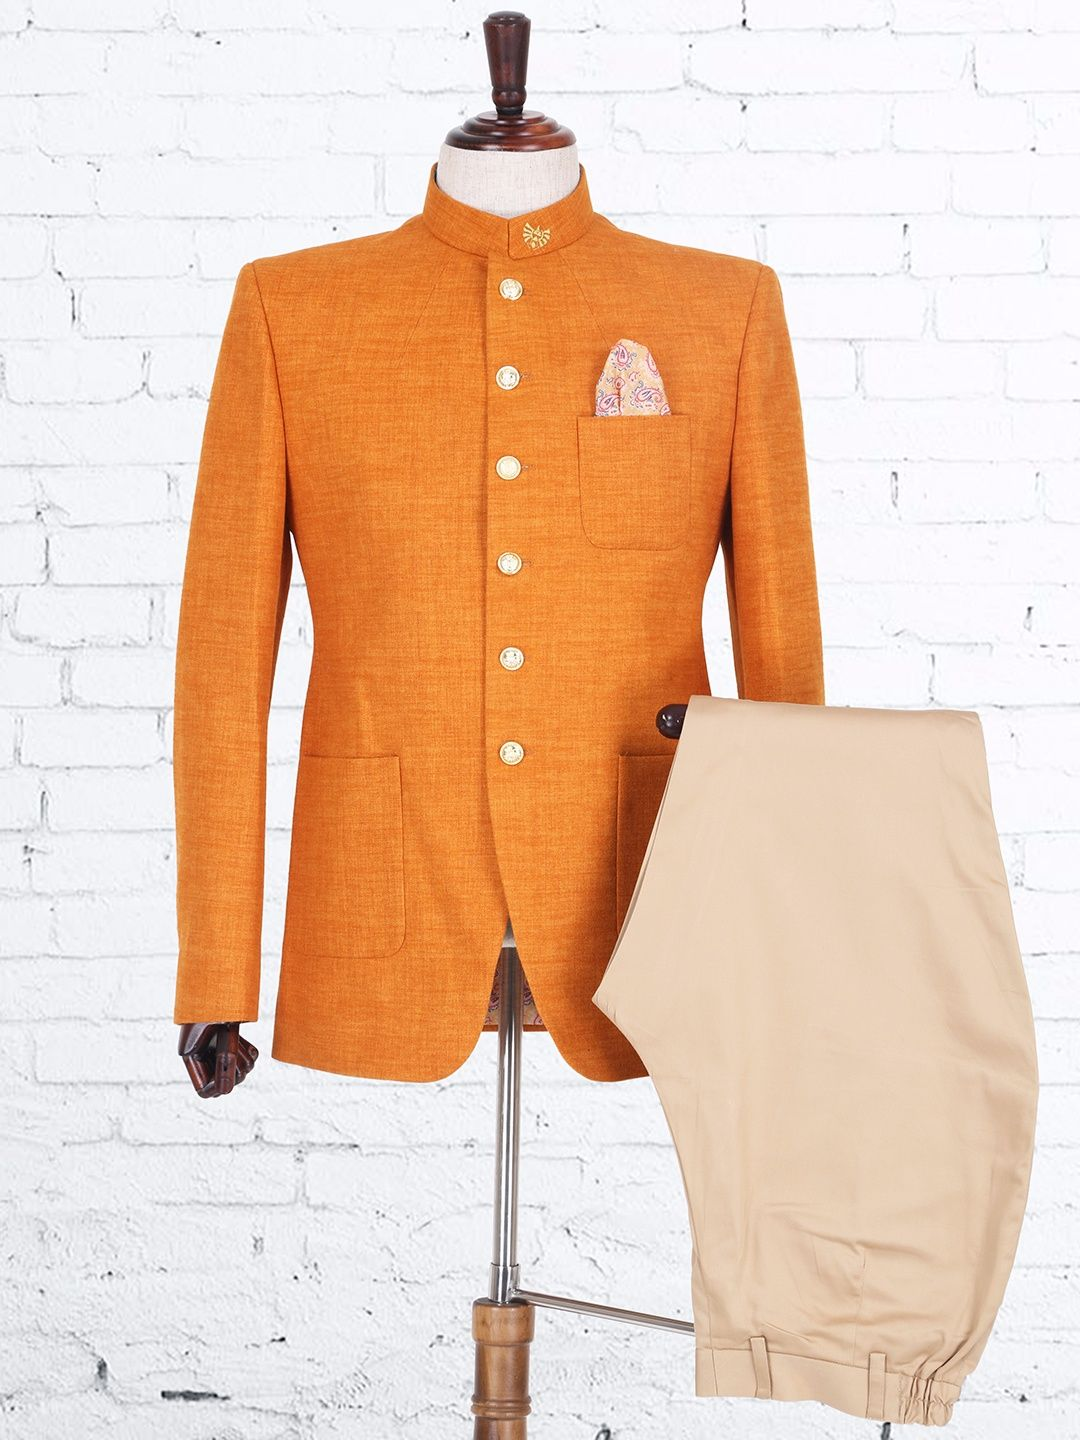 Solid orange jute jodhpuri suit mens jodhpuri suit in